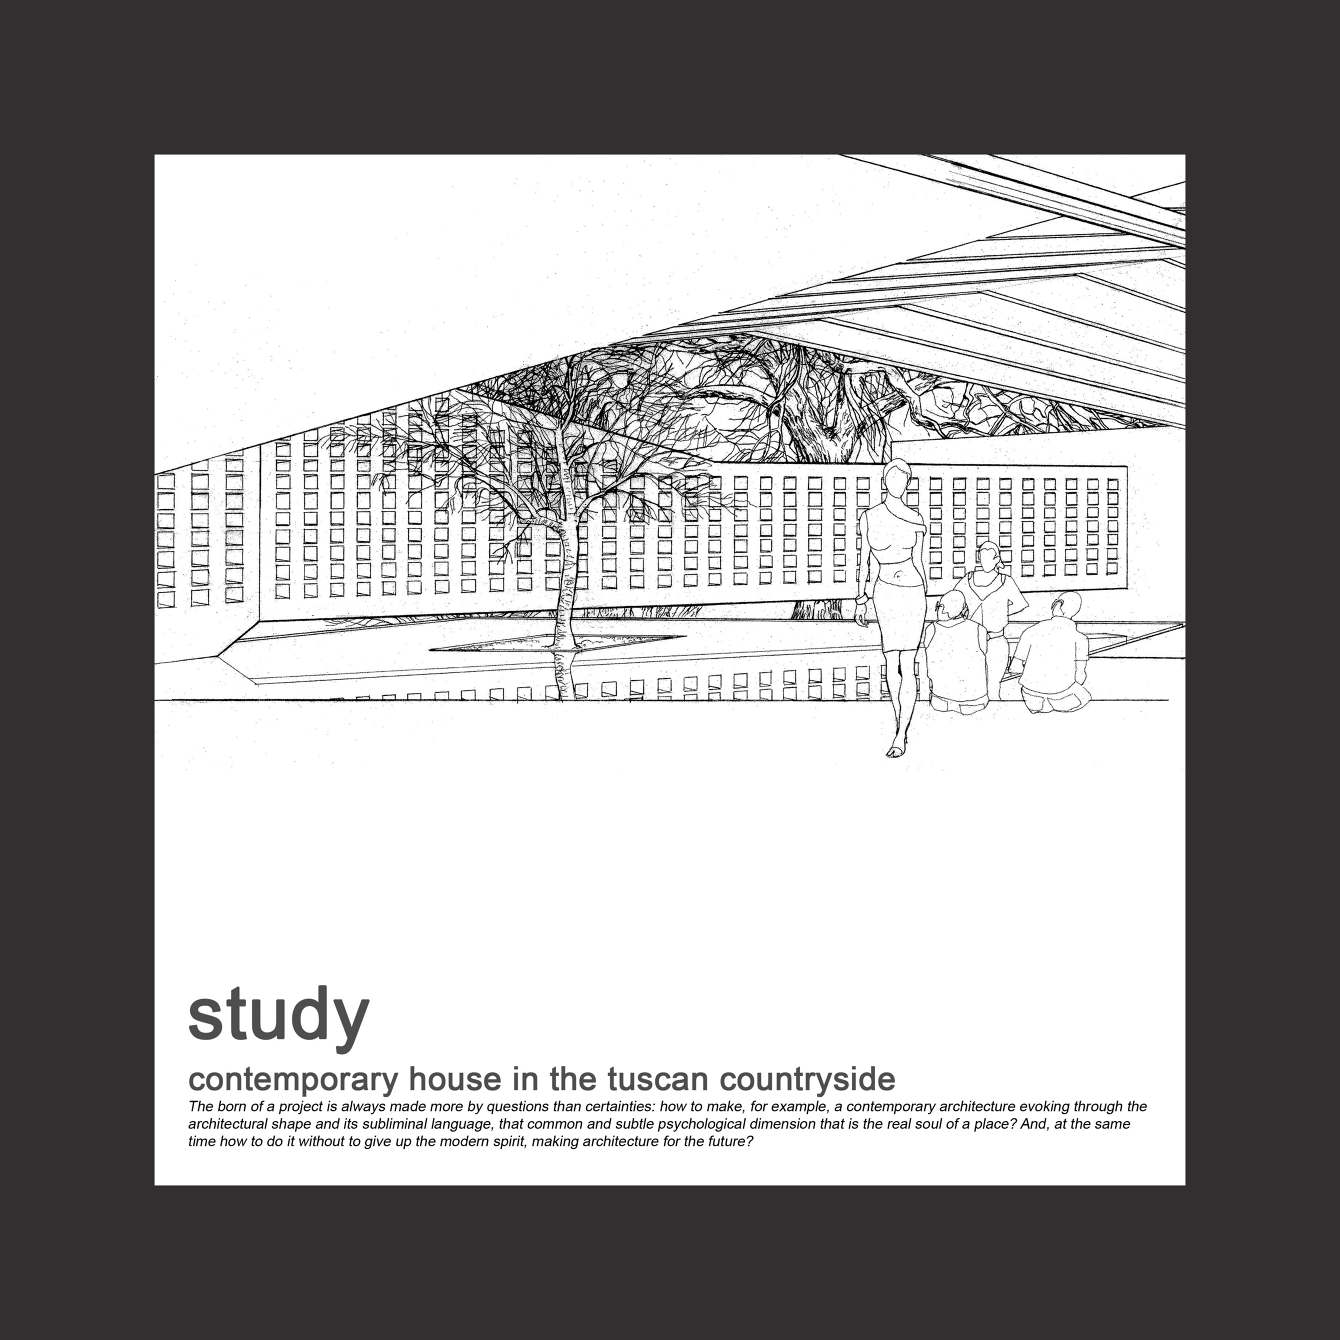 study for a contemporary house in the tuscan countryside